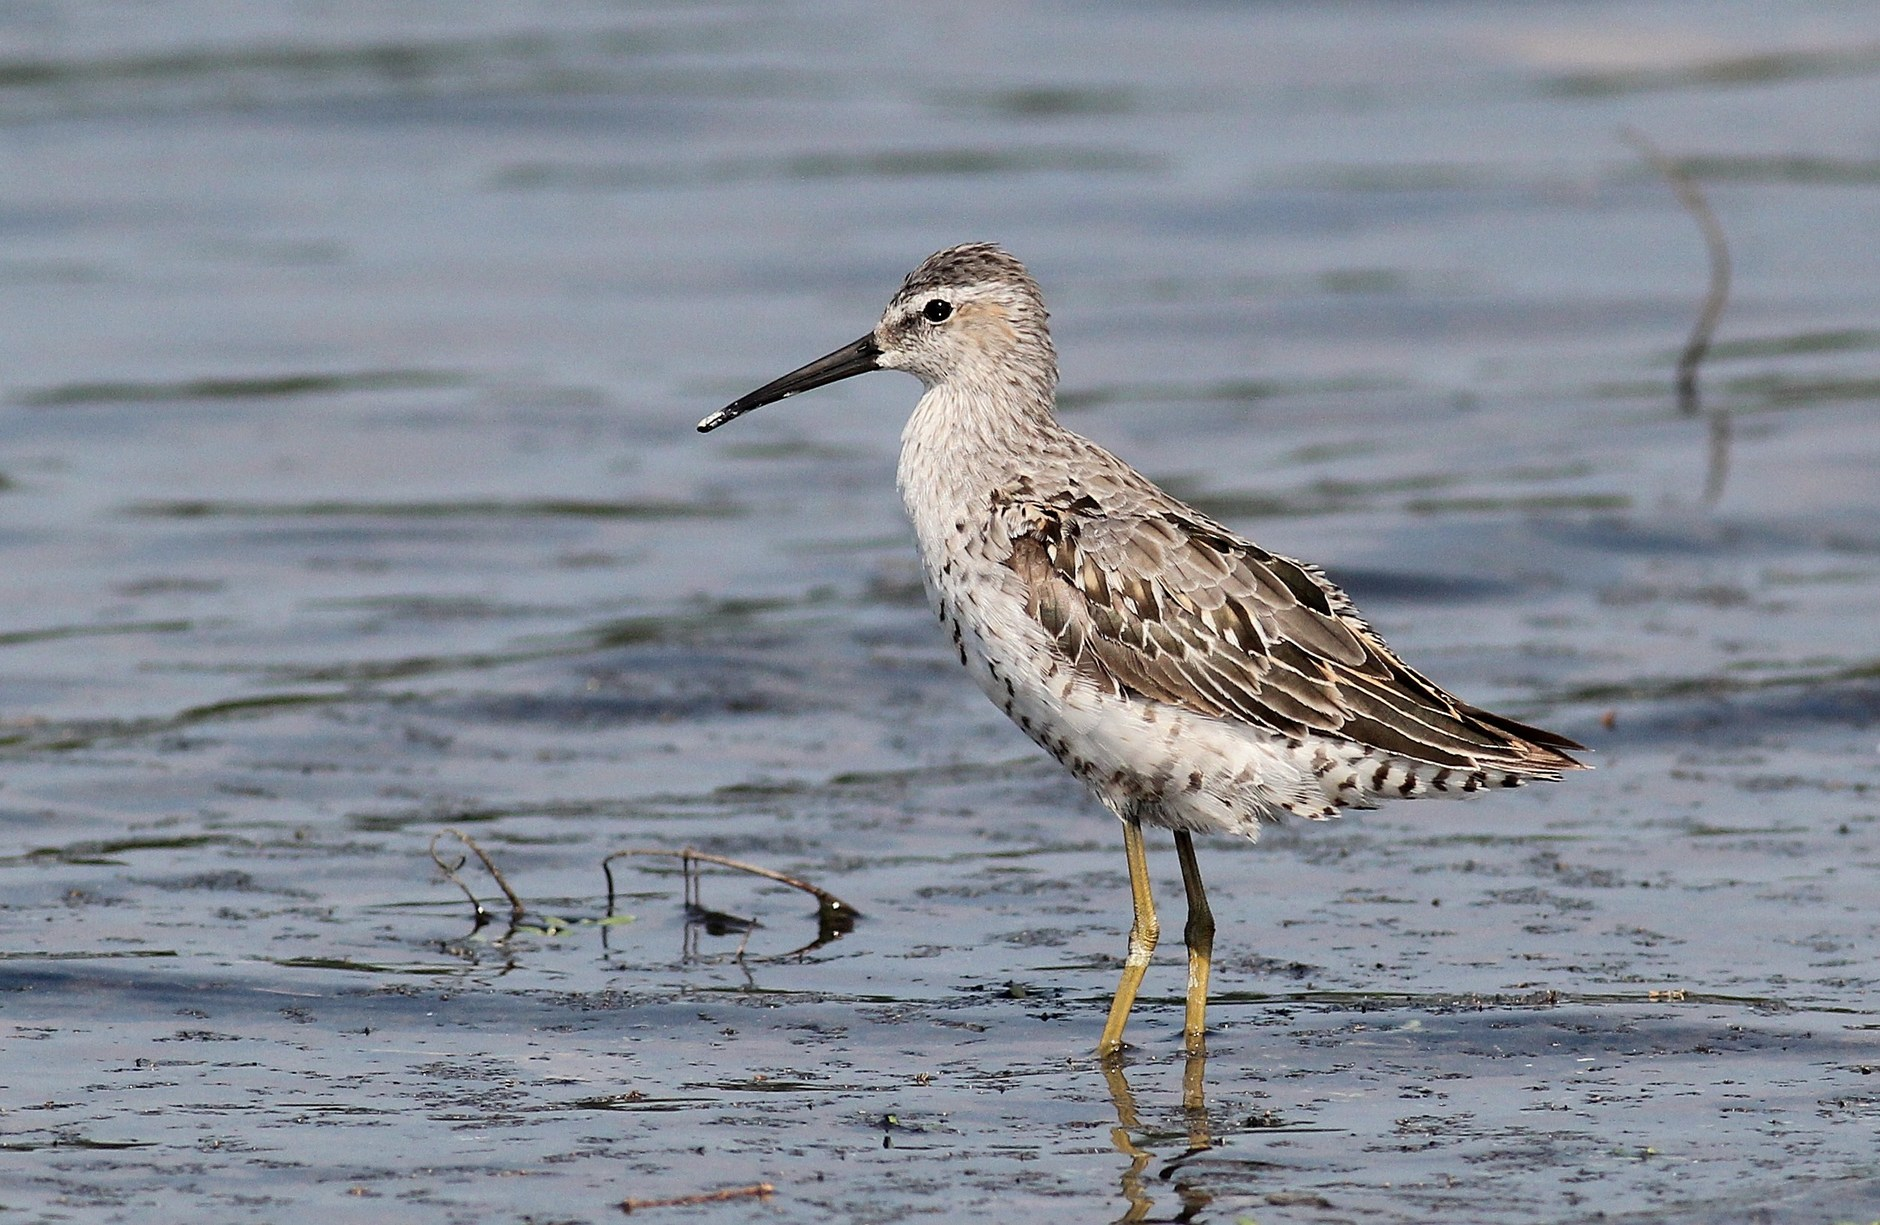 Stilt Sandpiper - Adult at Conejohela Flats, PA (Photo by Alex Lamoreaux)